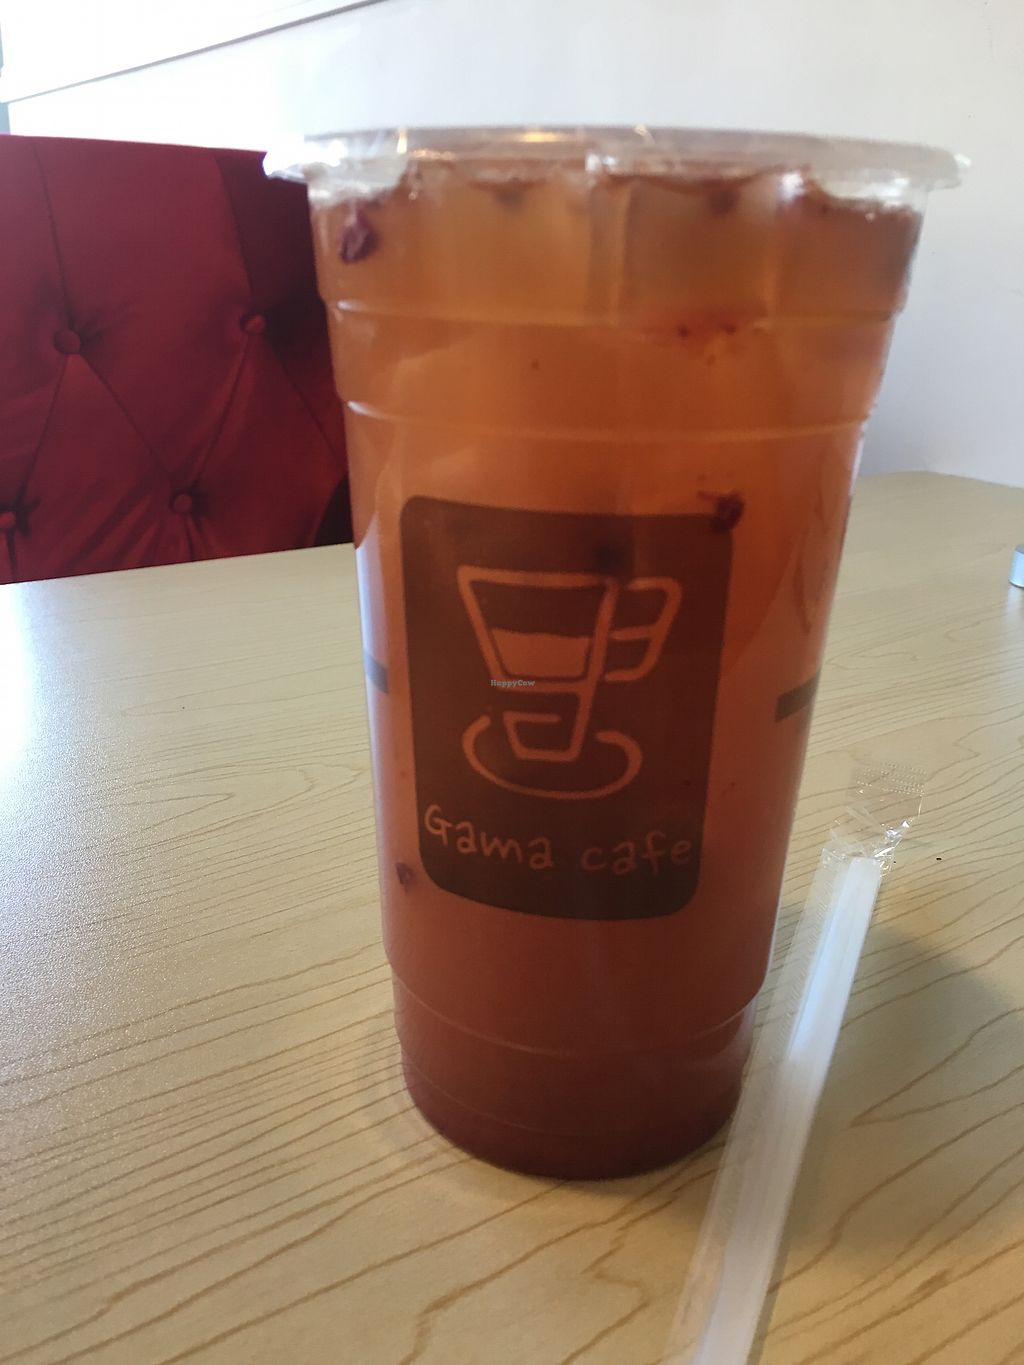 """Photo of Gama Cafe  by <a href=""""/members/profile/loopyandlumpy"""">loopyandlumpy</a> <br/>Strawberry Lemonade  <br/> January 18, 2018  - <a href='/contact/abuse/image/59270/348084'>Report</a>"""